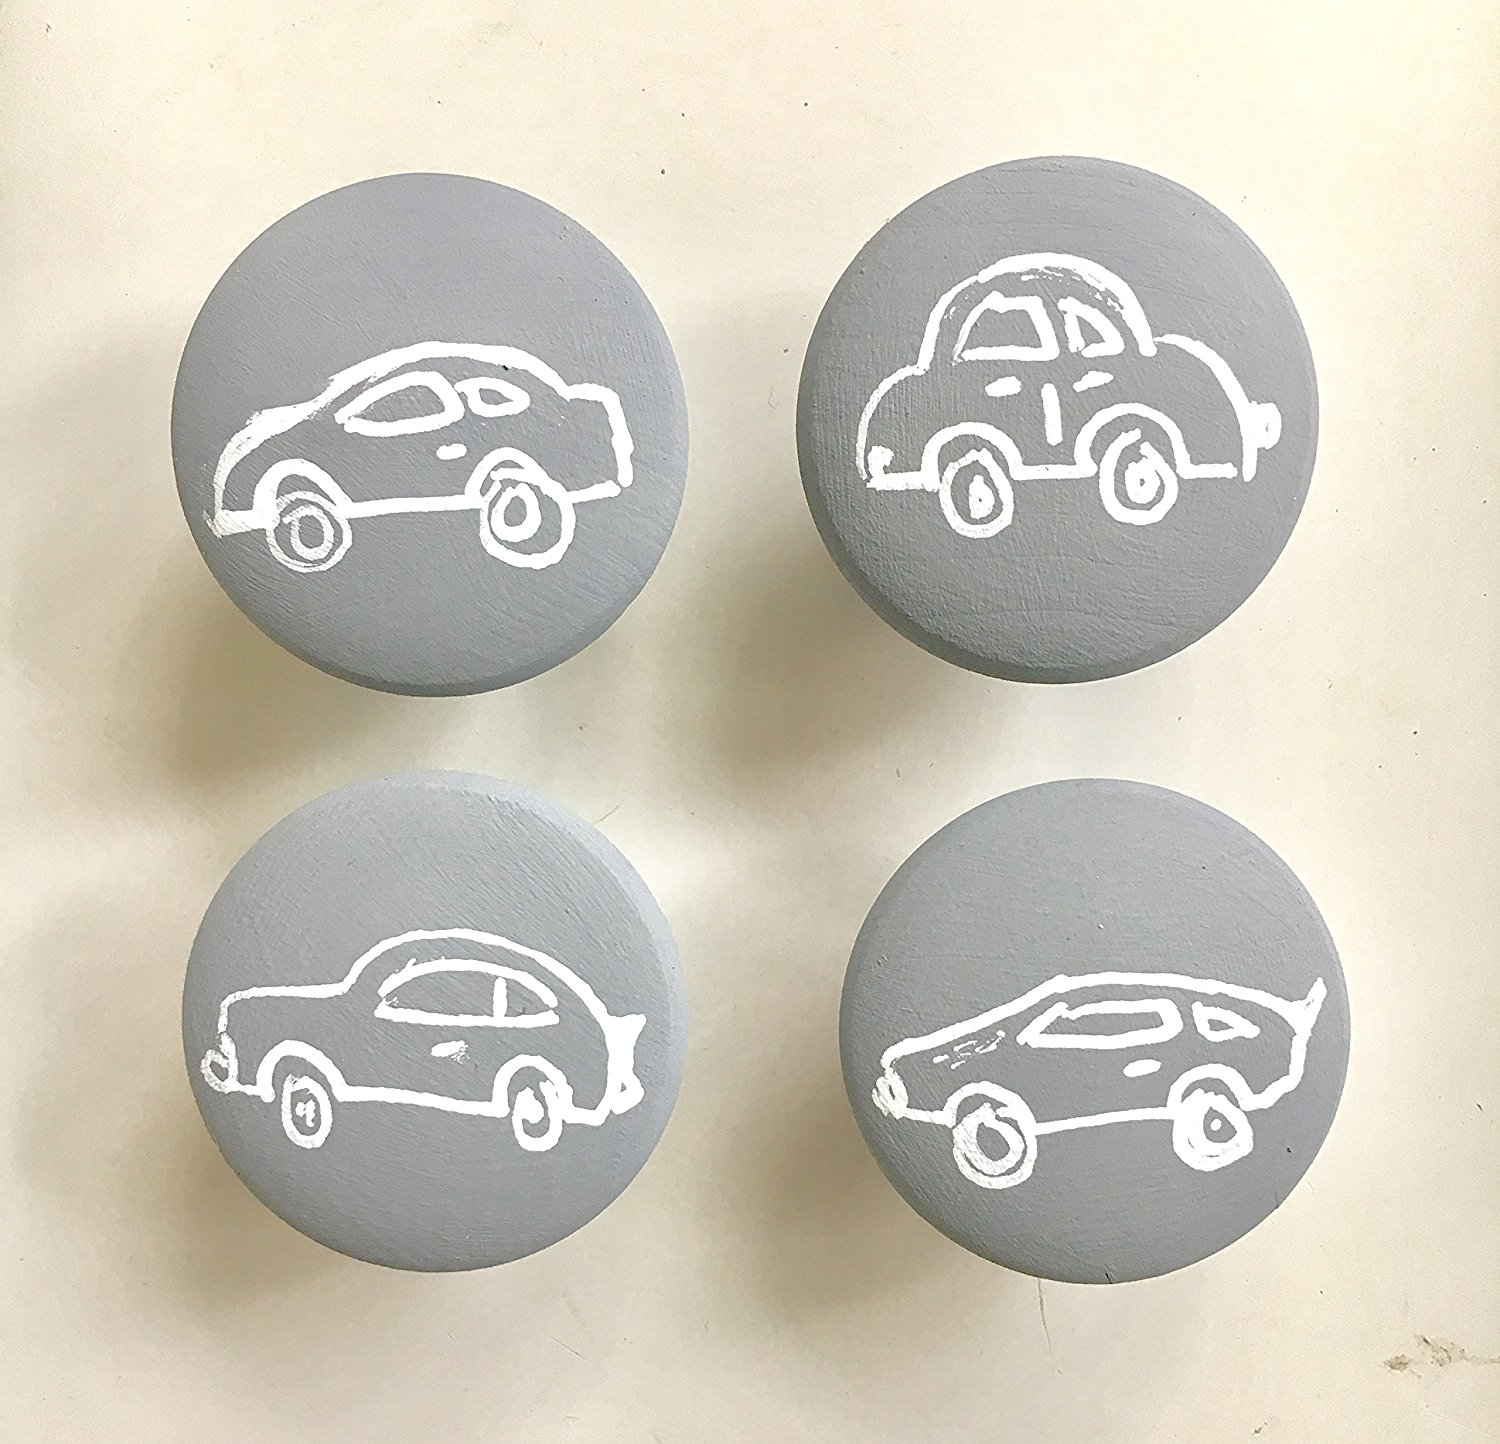 Set of 4 car knobs with screws, Hand-painted wooden knobs for cabinets, dresser, drawer pulls, any color custom/kids room/car lover/boys room / 4 knobs)